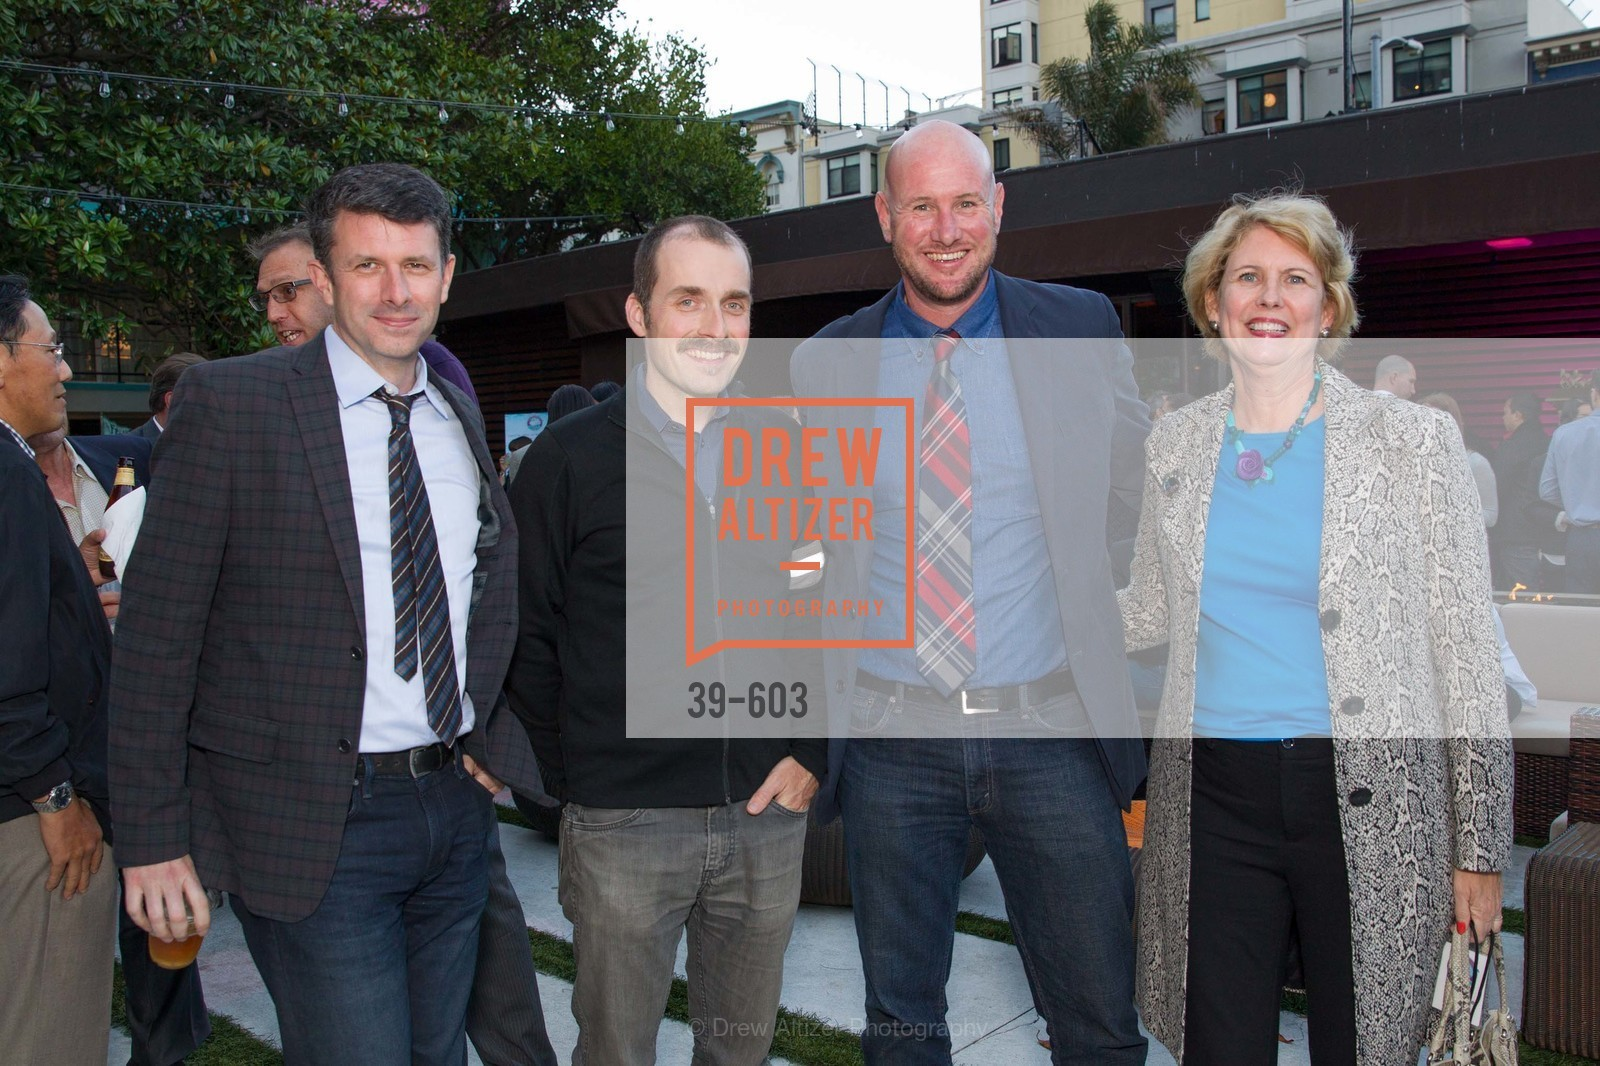 Ian Dunn, Mark Hogan, Steve Sutton, Christine Carr, 22nd Annual TNDC CELEBRITY POOL TOSS, US, October 9th, 2014,Drew Altizer, Drew Altizer Photography, full-service agency, private events, San Francisco photographer, photographer california